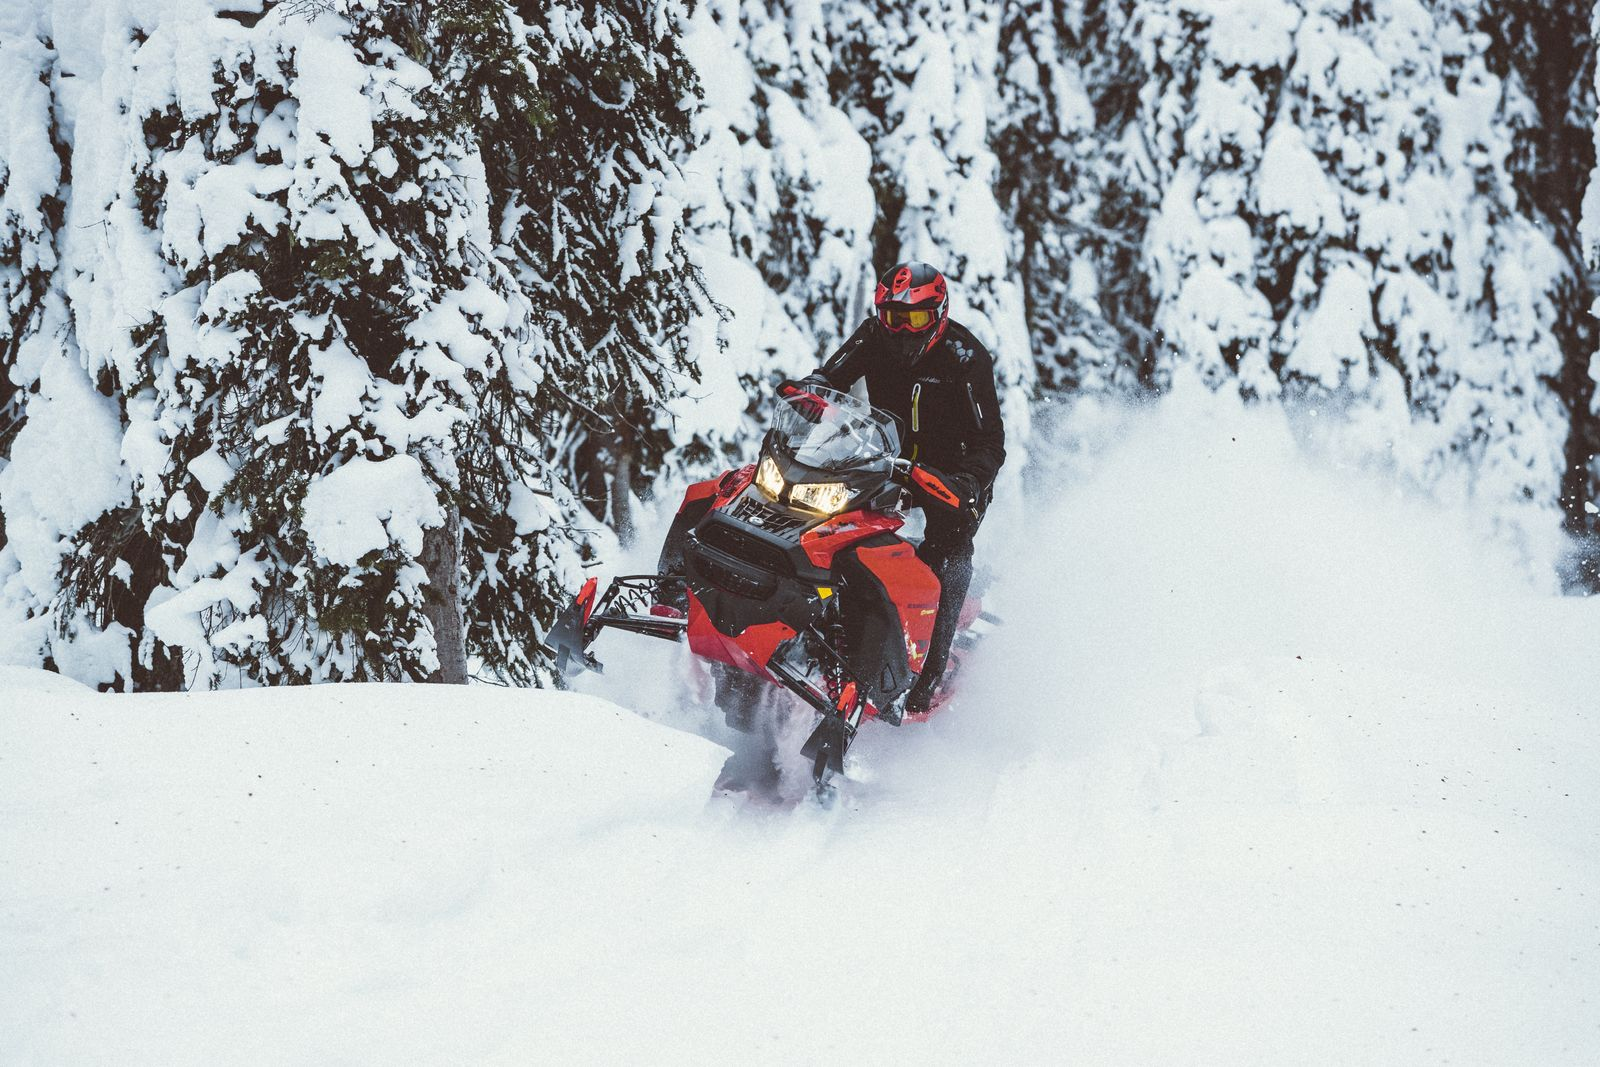 SKI doo 2020_Expedition_Extreme_Action_MY20_JW_24611_R2_RGB-1600x1600.jpg